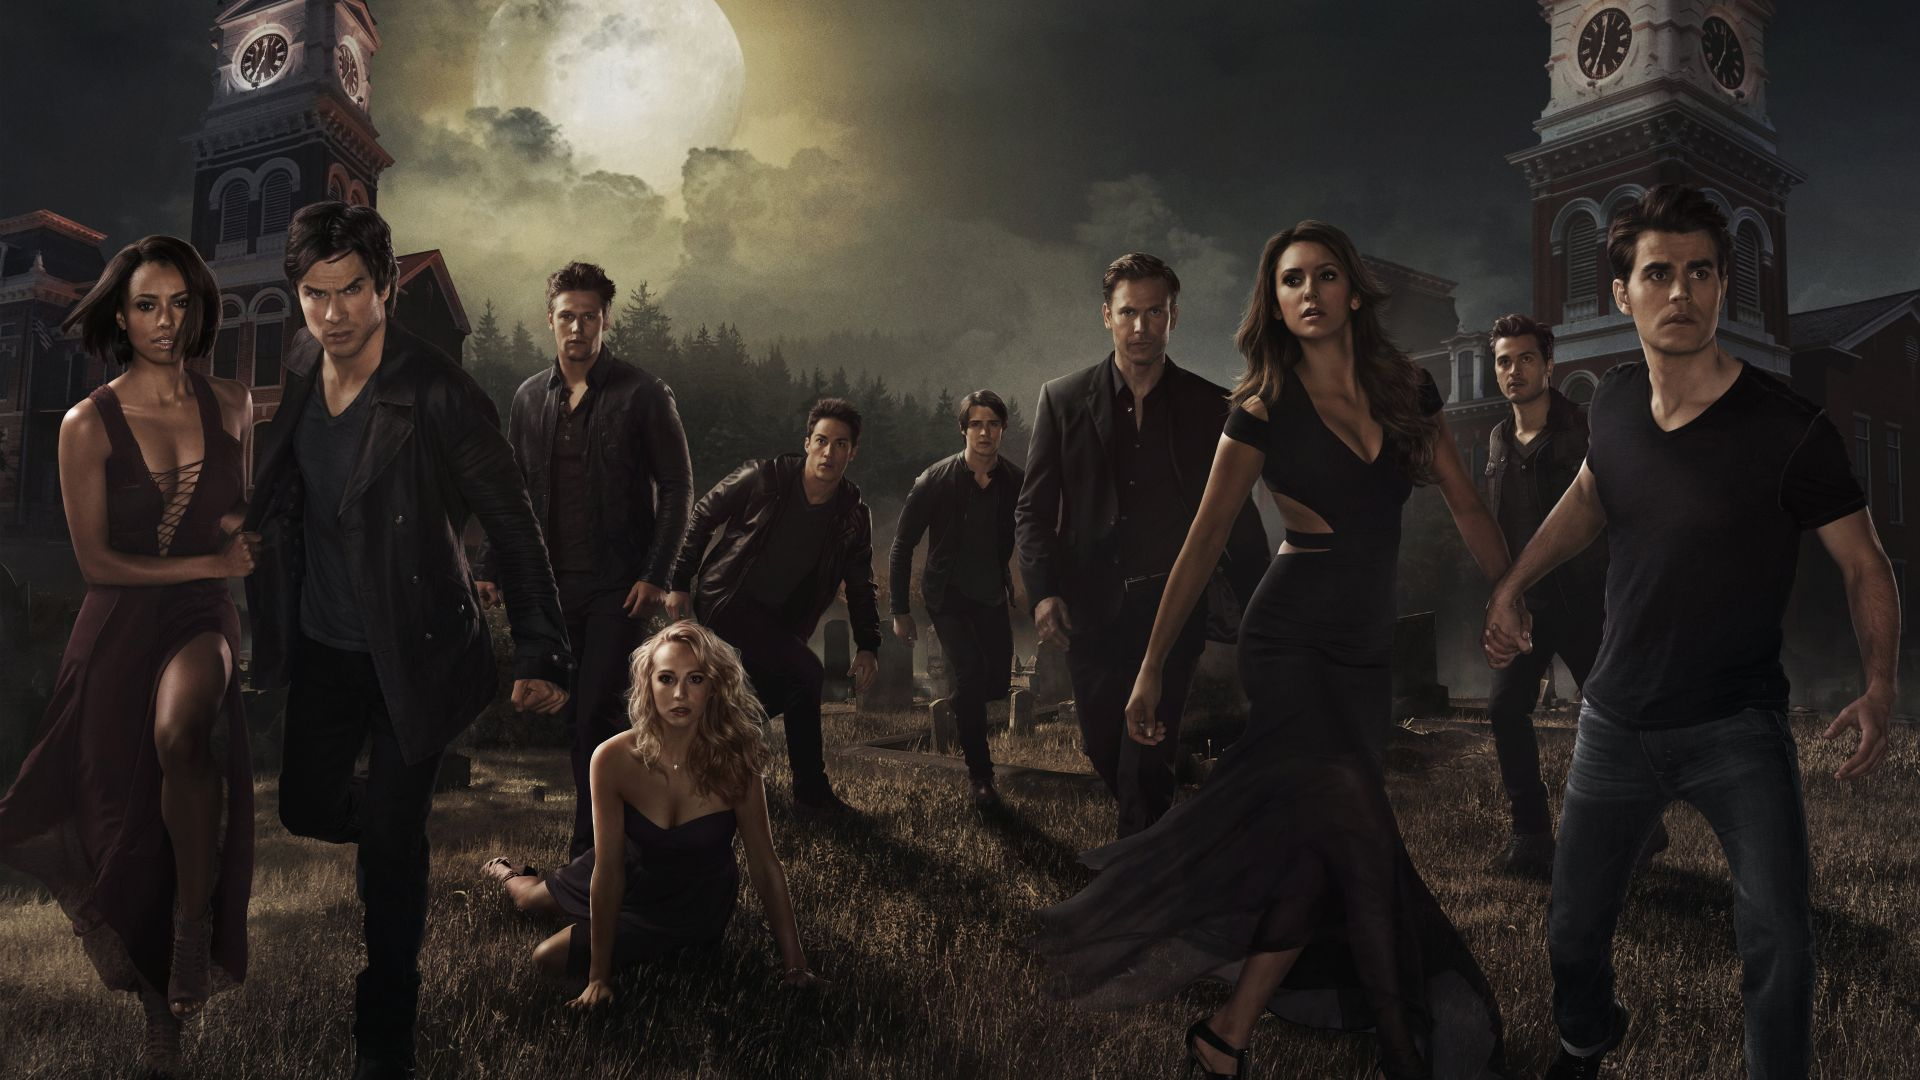 The Vampire Diaries, Nina Dobrev, Ian Somerhalder, Paul Wesley, poster, TV Series, 8k (horizontal)